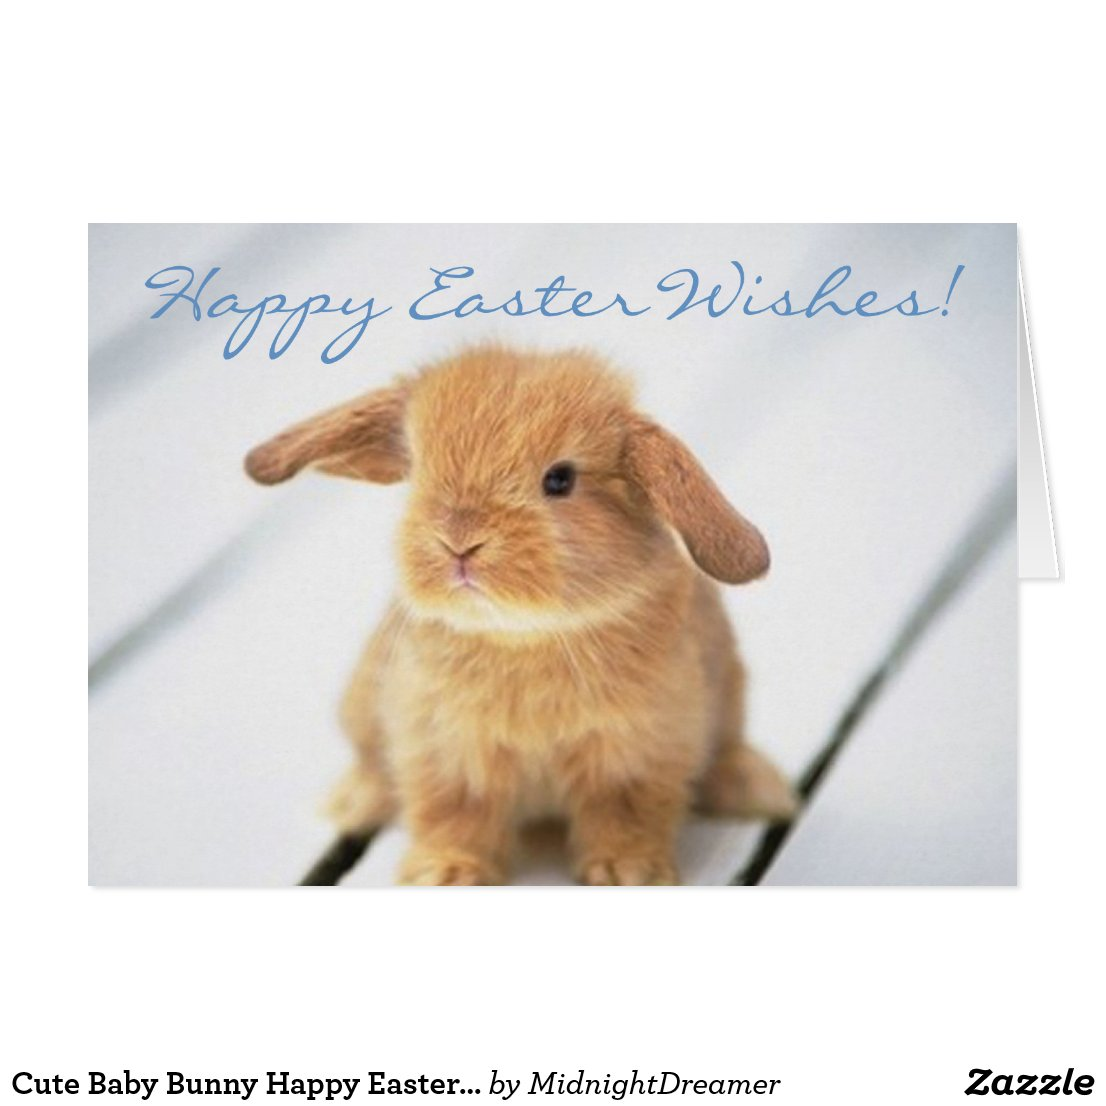 Cute Baby Bunny Happy Easter Card